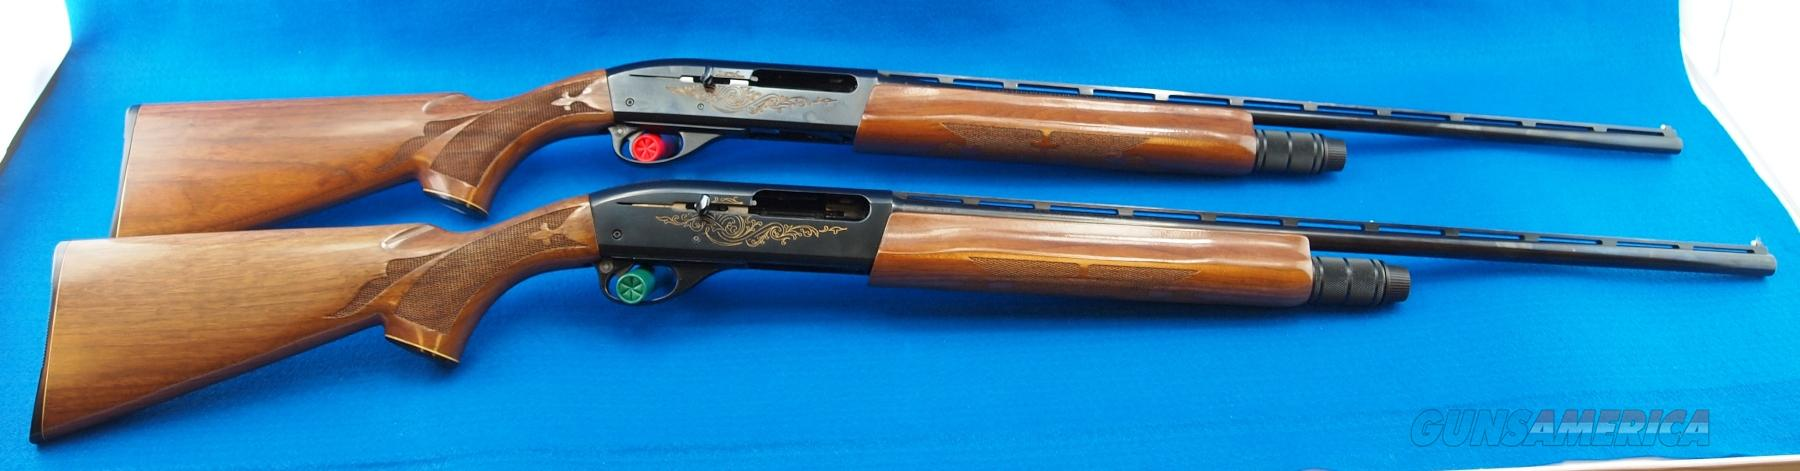 Remington 1100 Matched Pair Skeet set 28ga.& 410ga. #4020  Guns > Shotguns > Remington Shotguns  > Autoloaders > Trap/Skeet